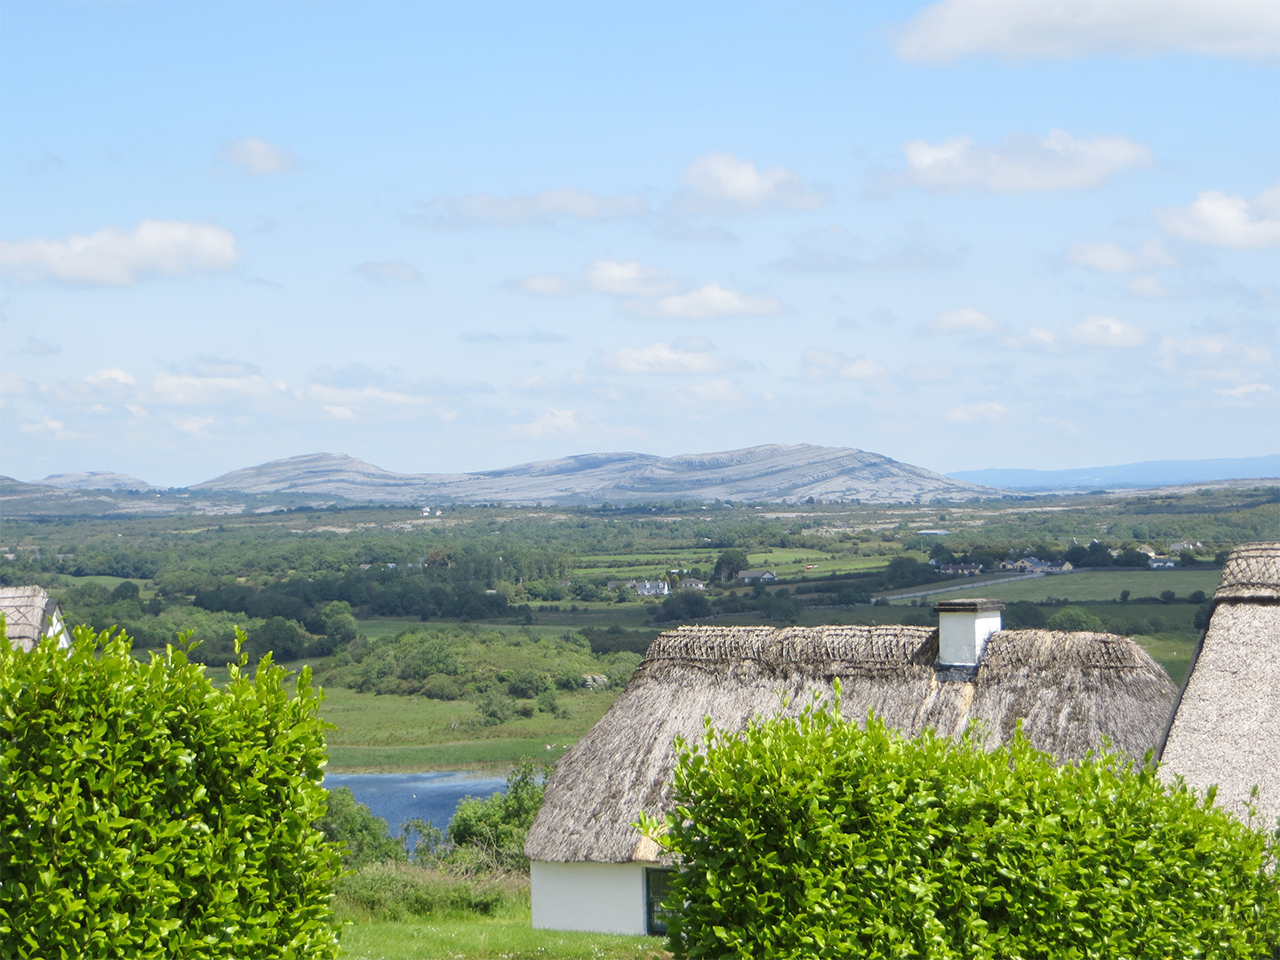 Thatched Cottage with the Burren in the background